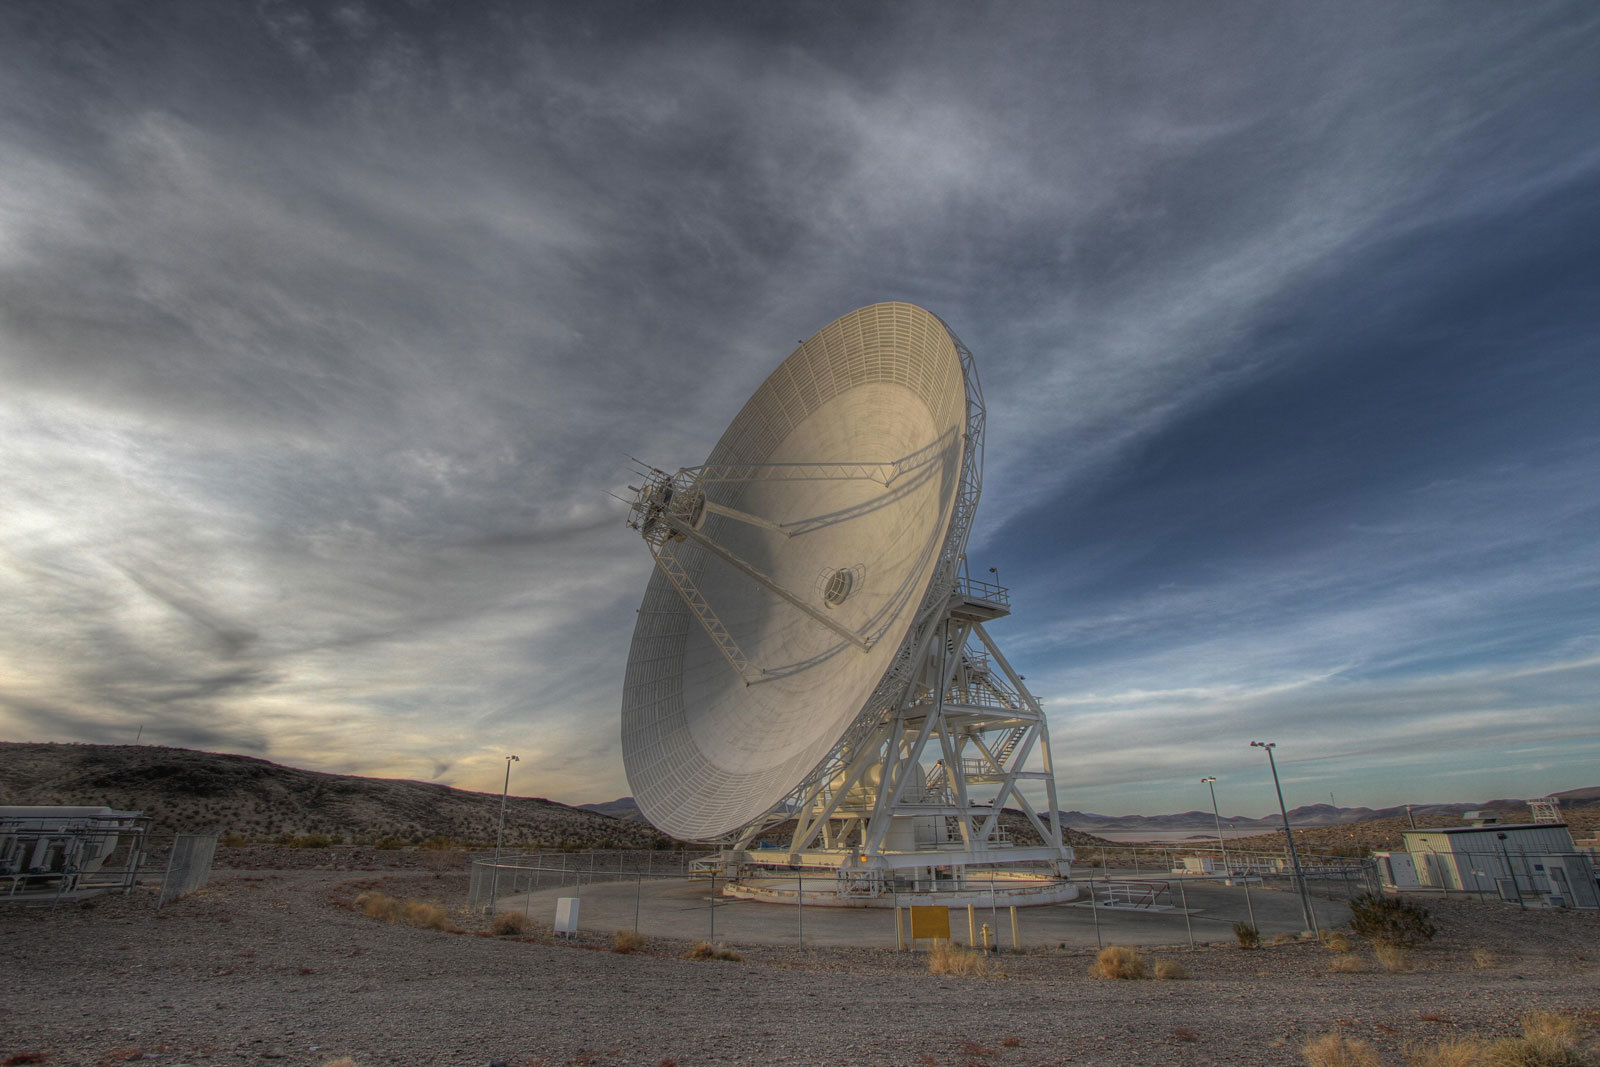 A Goldstone 111.5-foot (34-meter) beam-waveguide antenna tracks a spacecraft as it comes into view. The Goldstone Deep Space Communications Complex is located in the Mojave Desert in California.